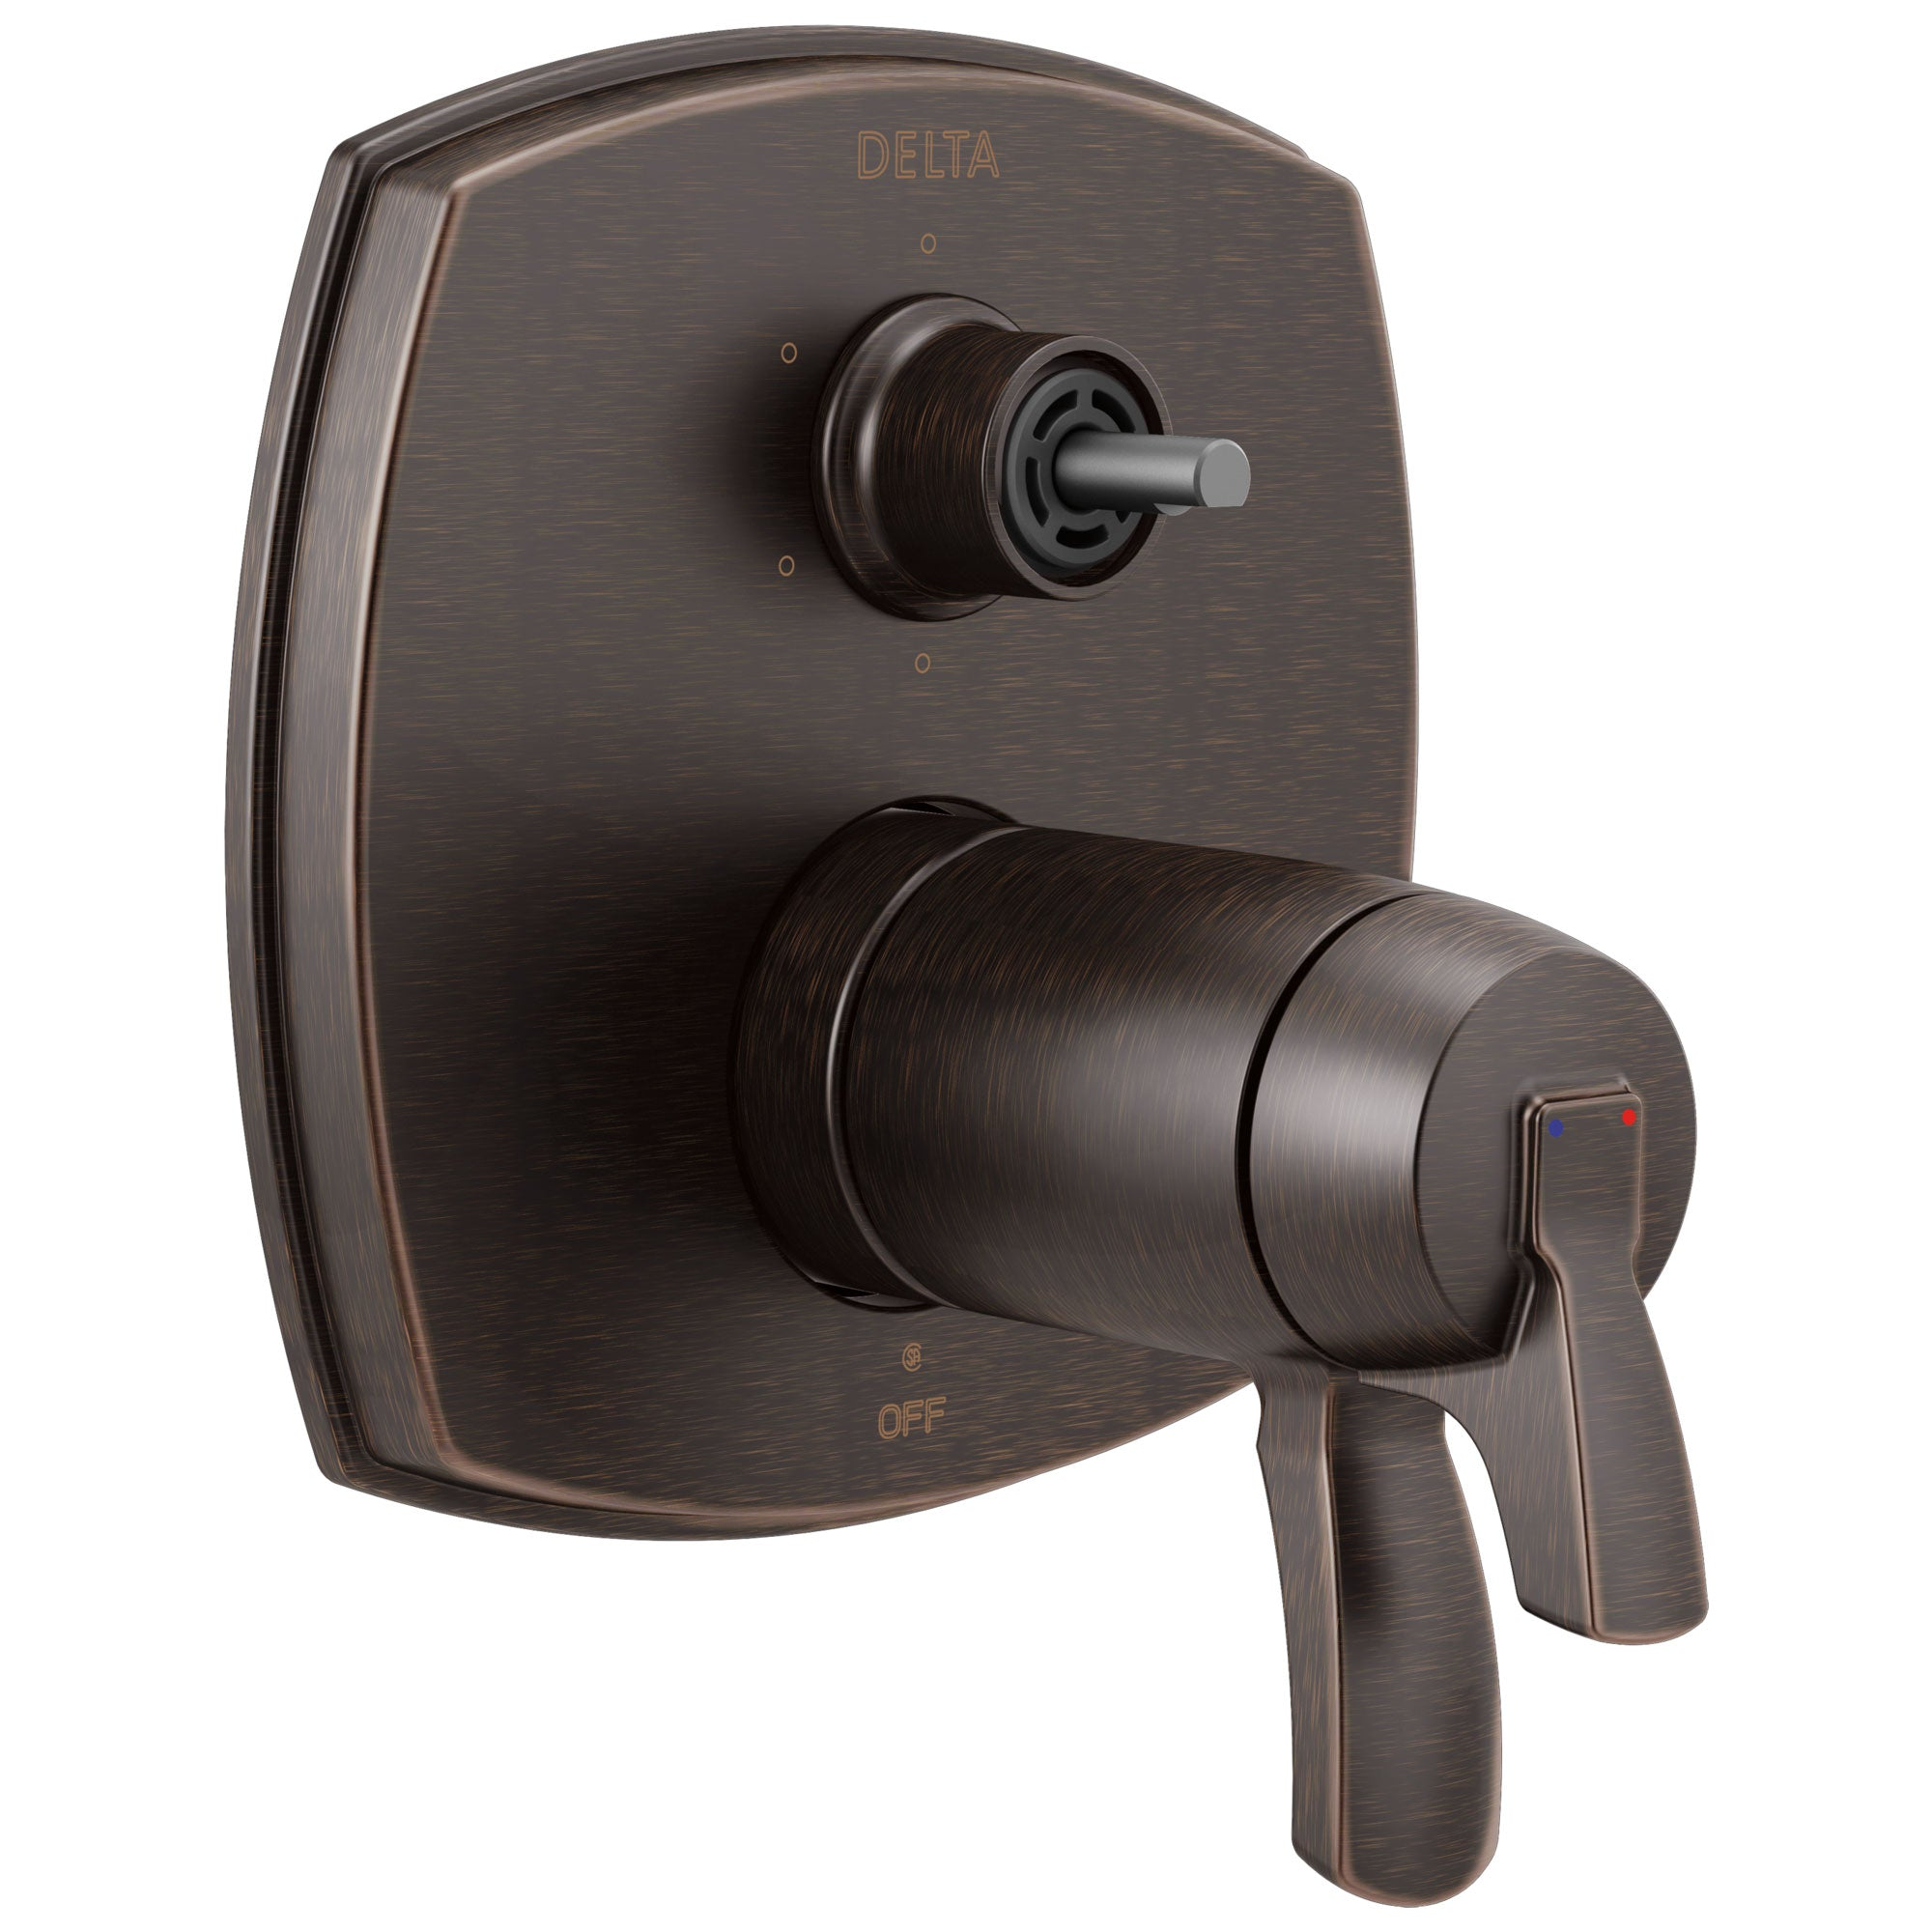 Delta Stryke Venetian Bronze Finish 17 Thermostatic Integrated Diverter Shower Control Trim with Six Function Diverter Less Diverter Handle (Requires Valve) DT27T976RBLHP